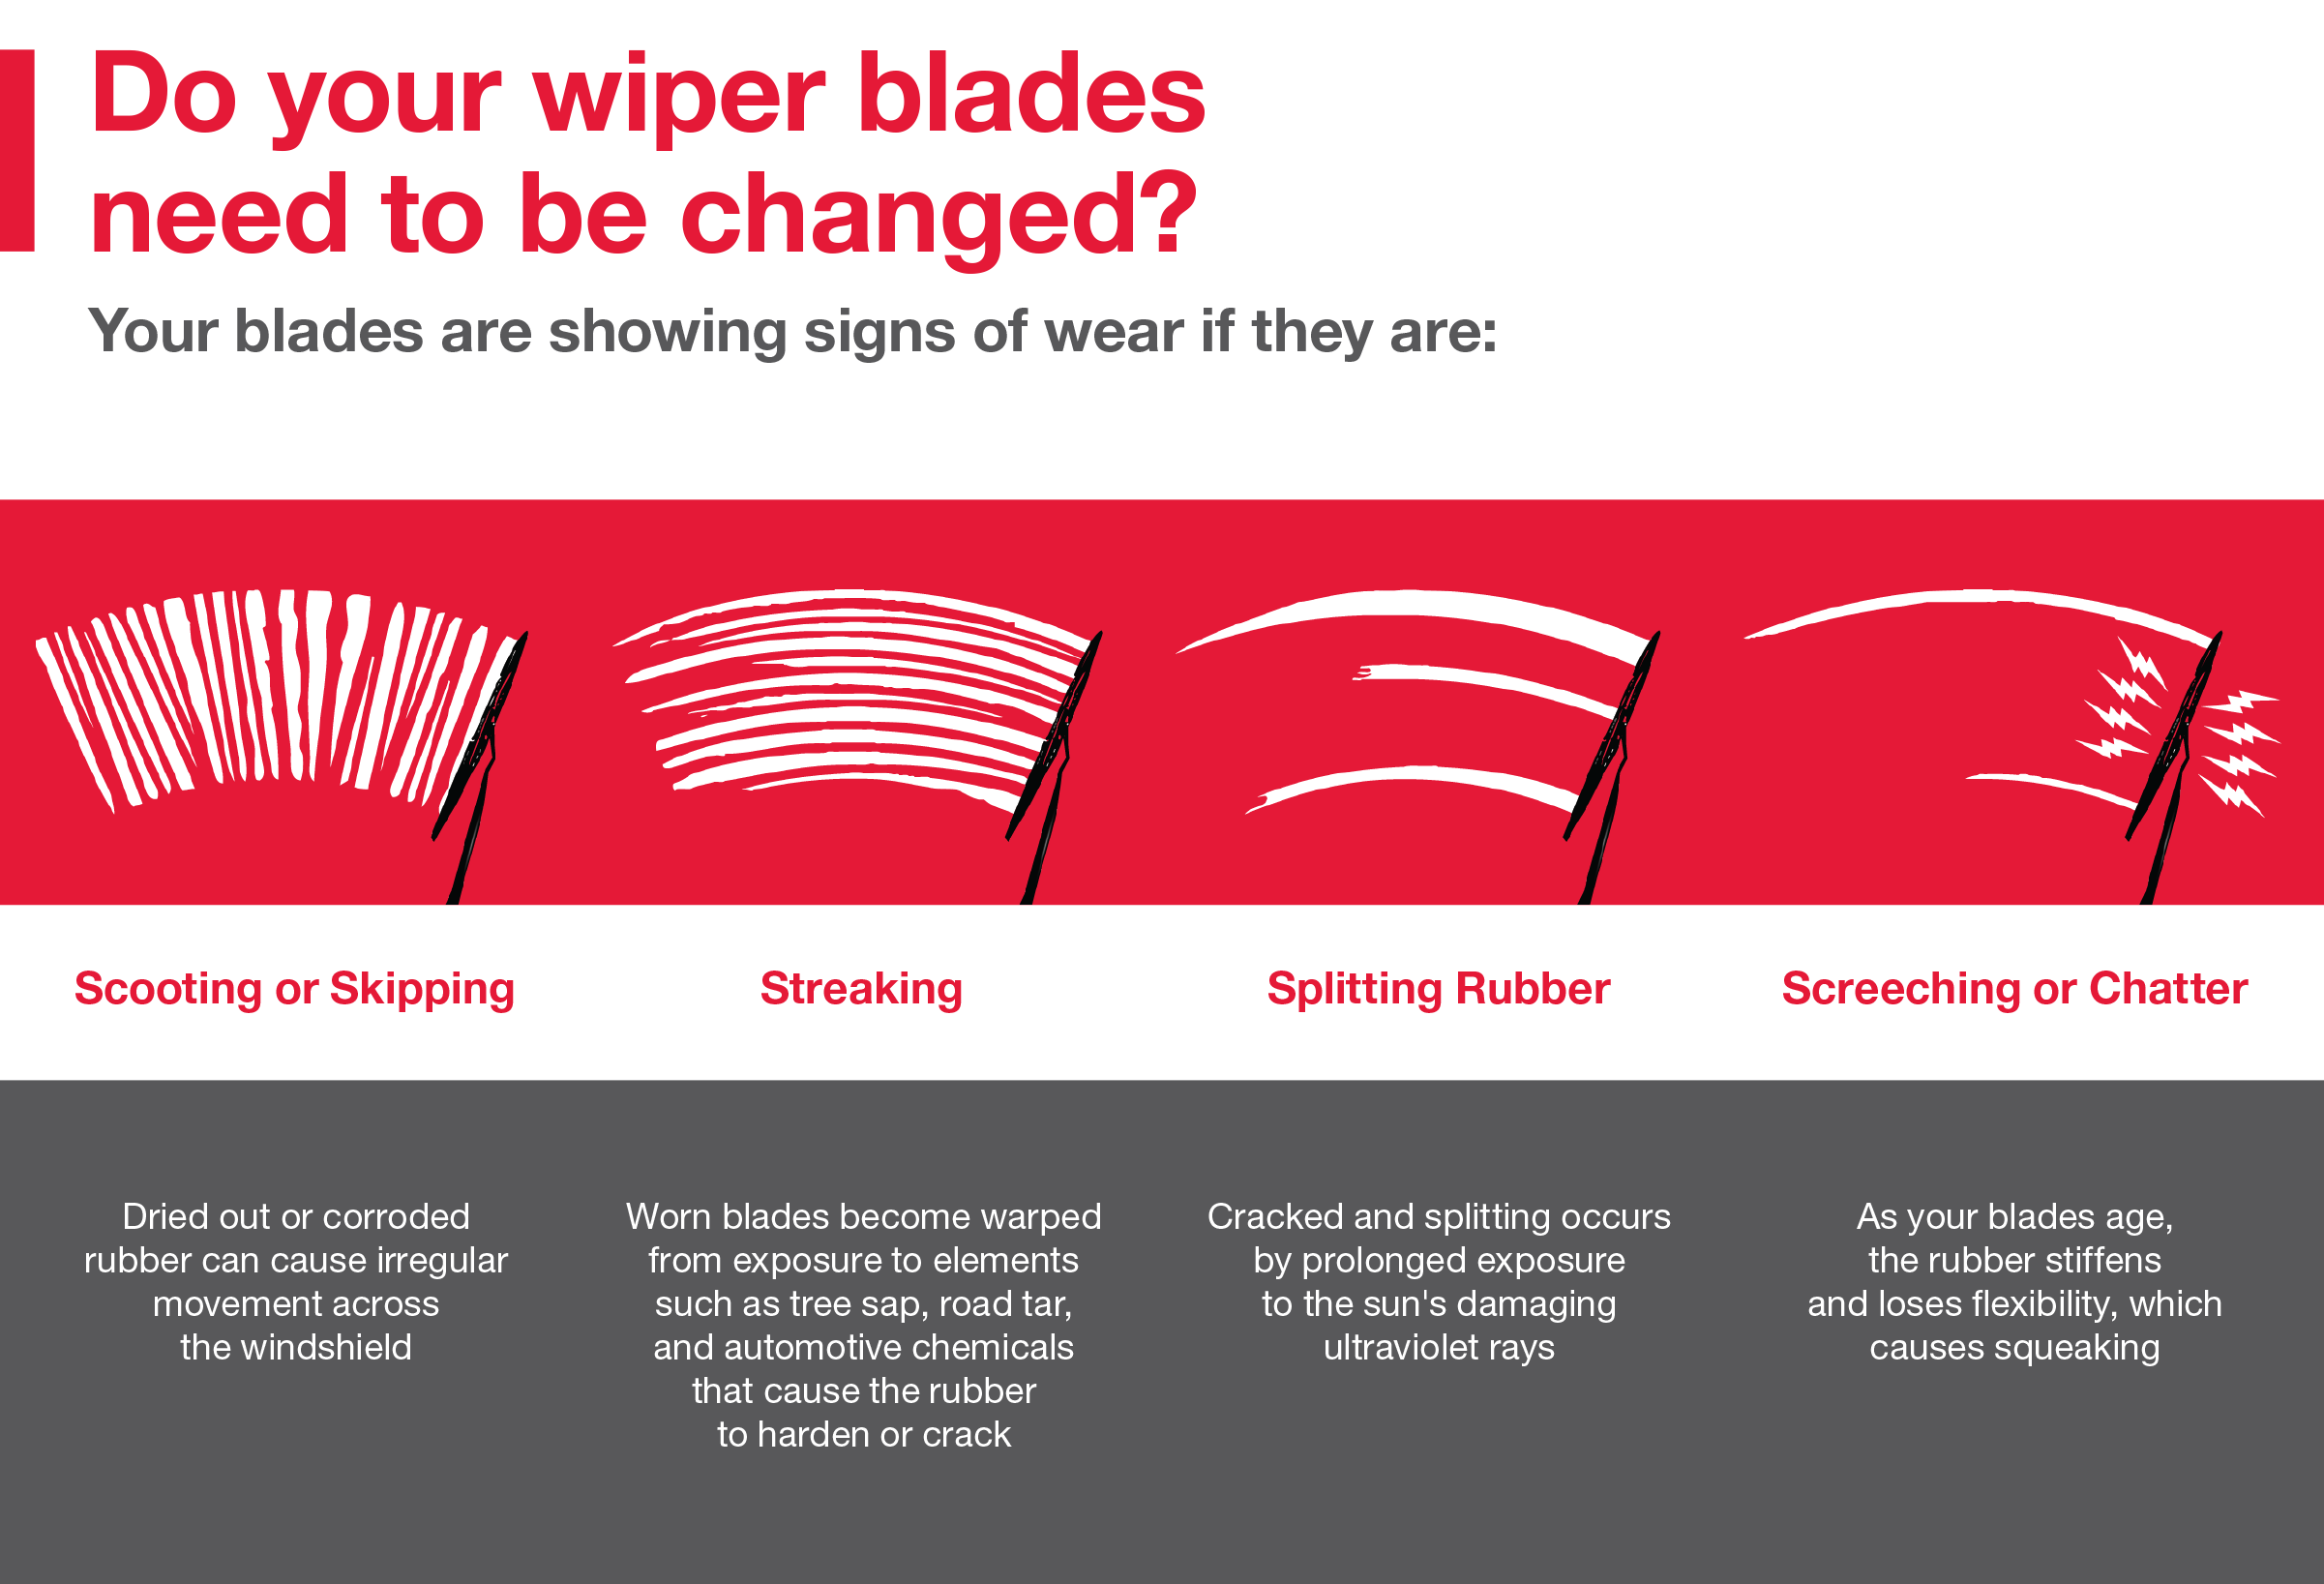 Do your wiper blades need to be changed? Call your local dealer for more info: (575) 500-0180